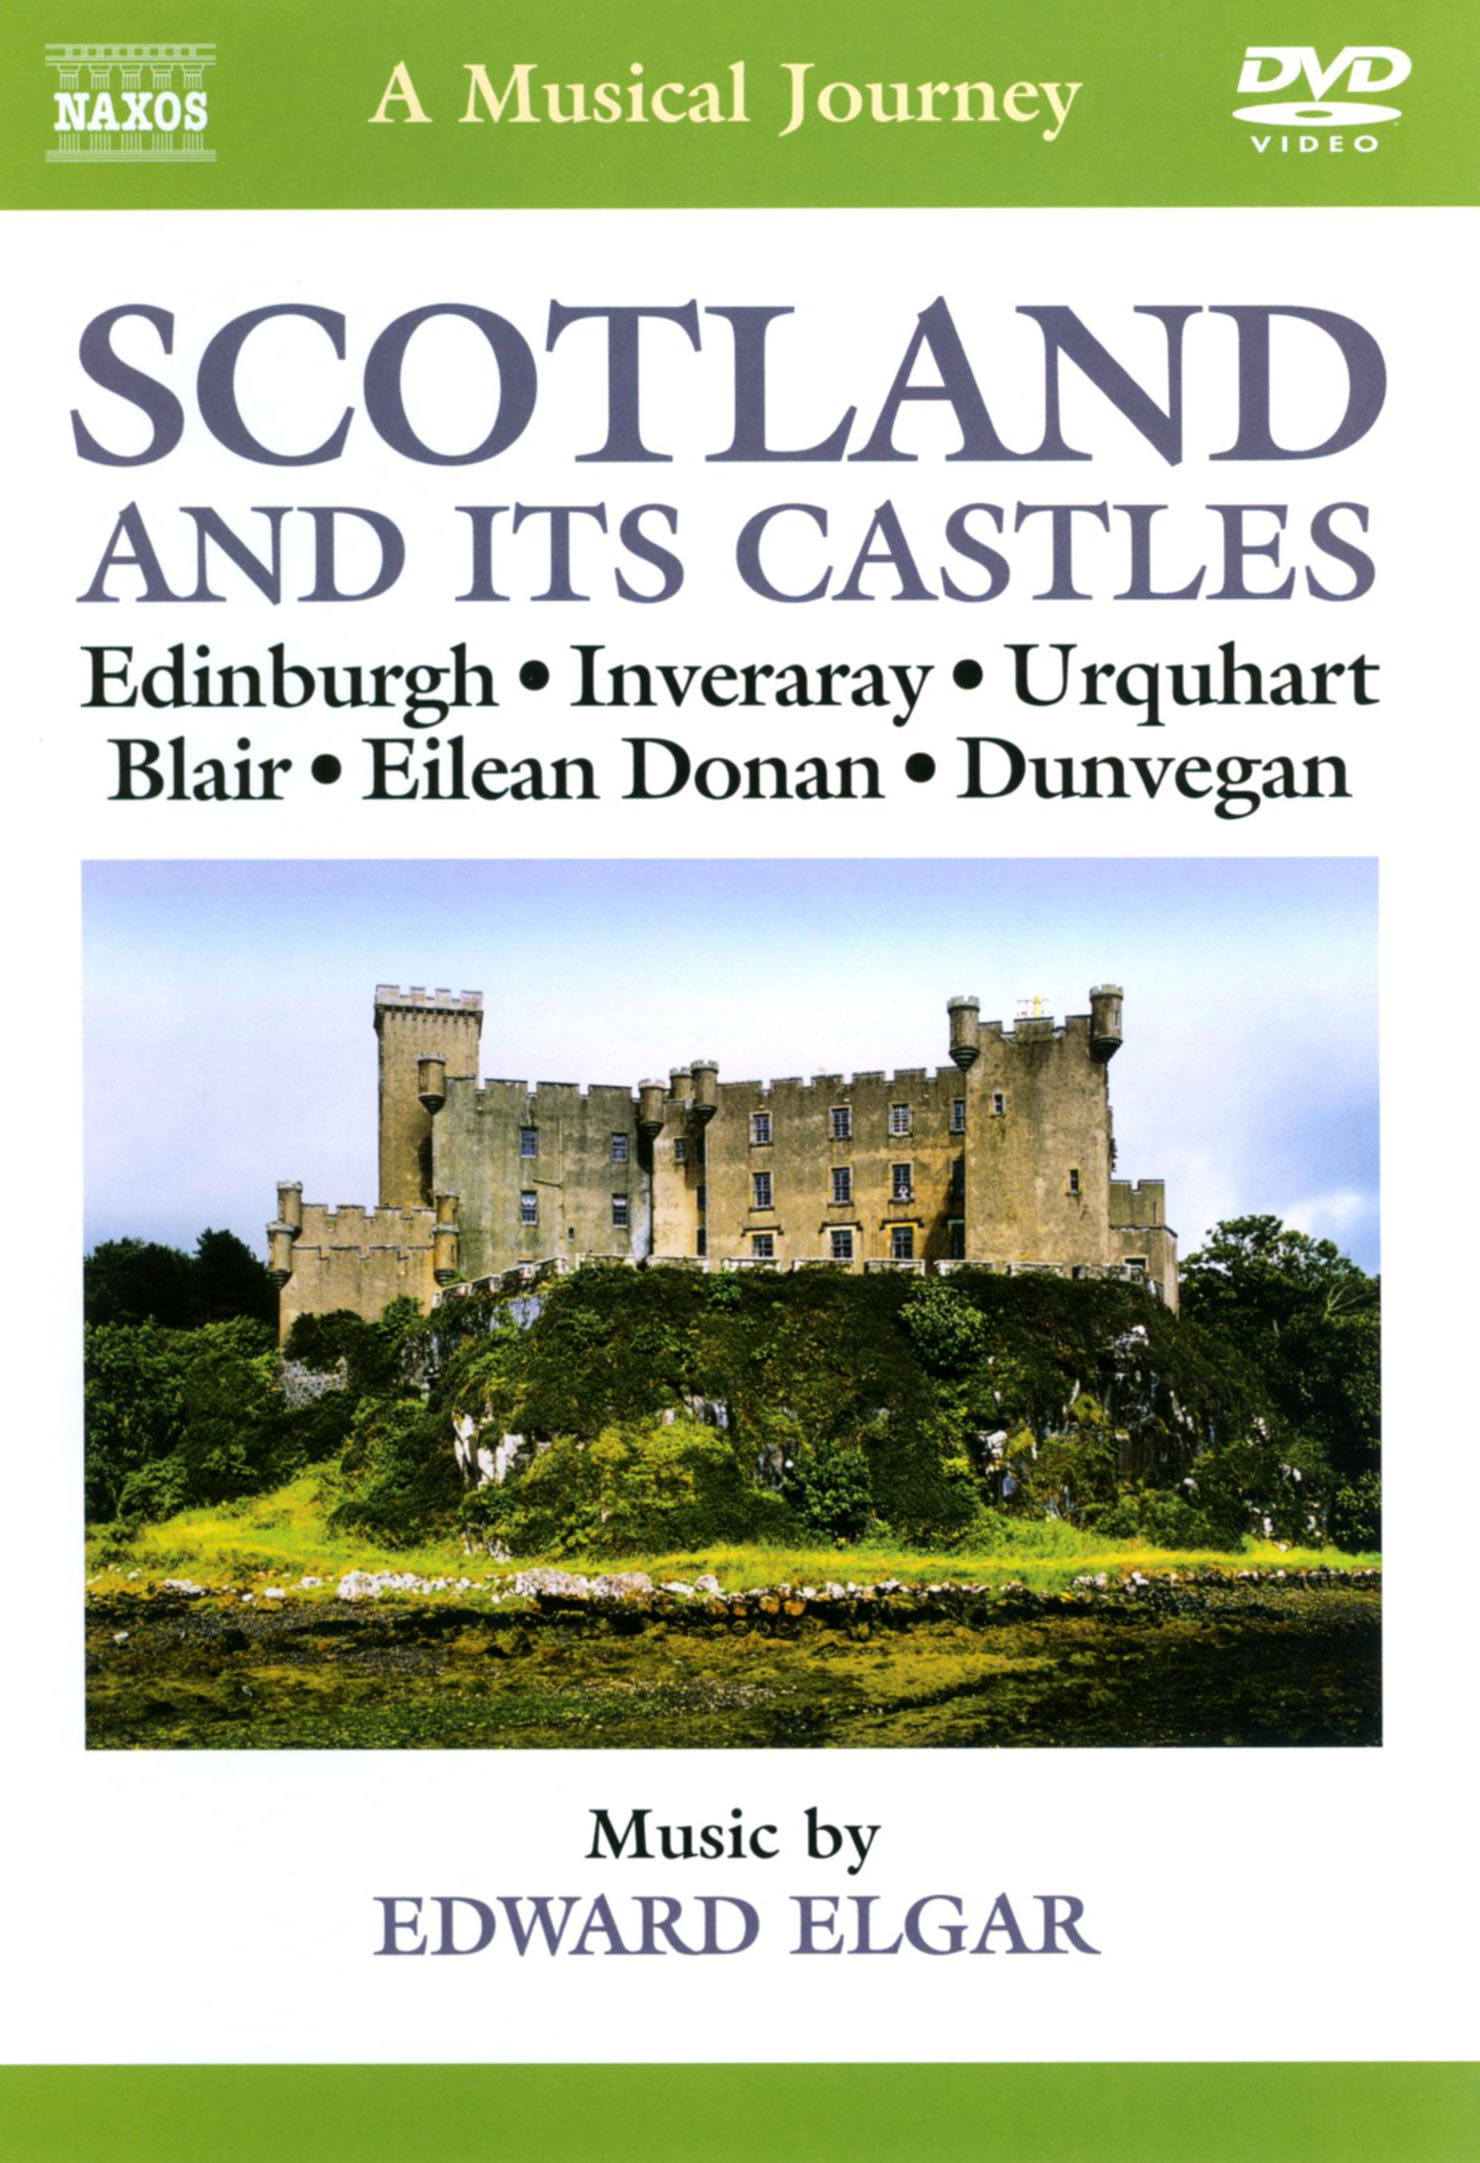 A Musical Journey: Scotland and Its Castles